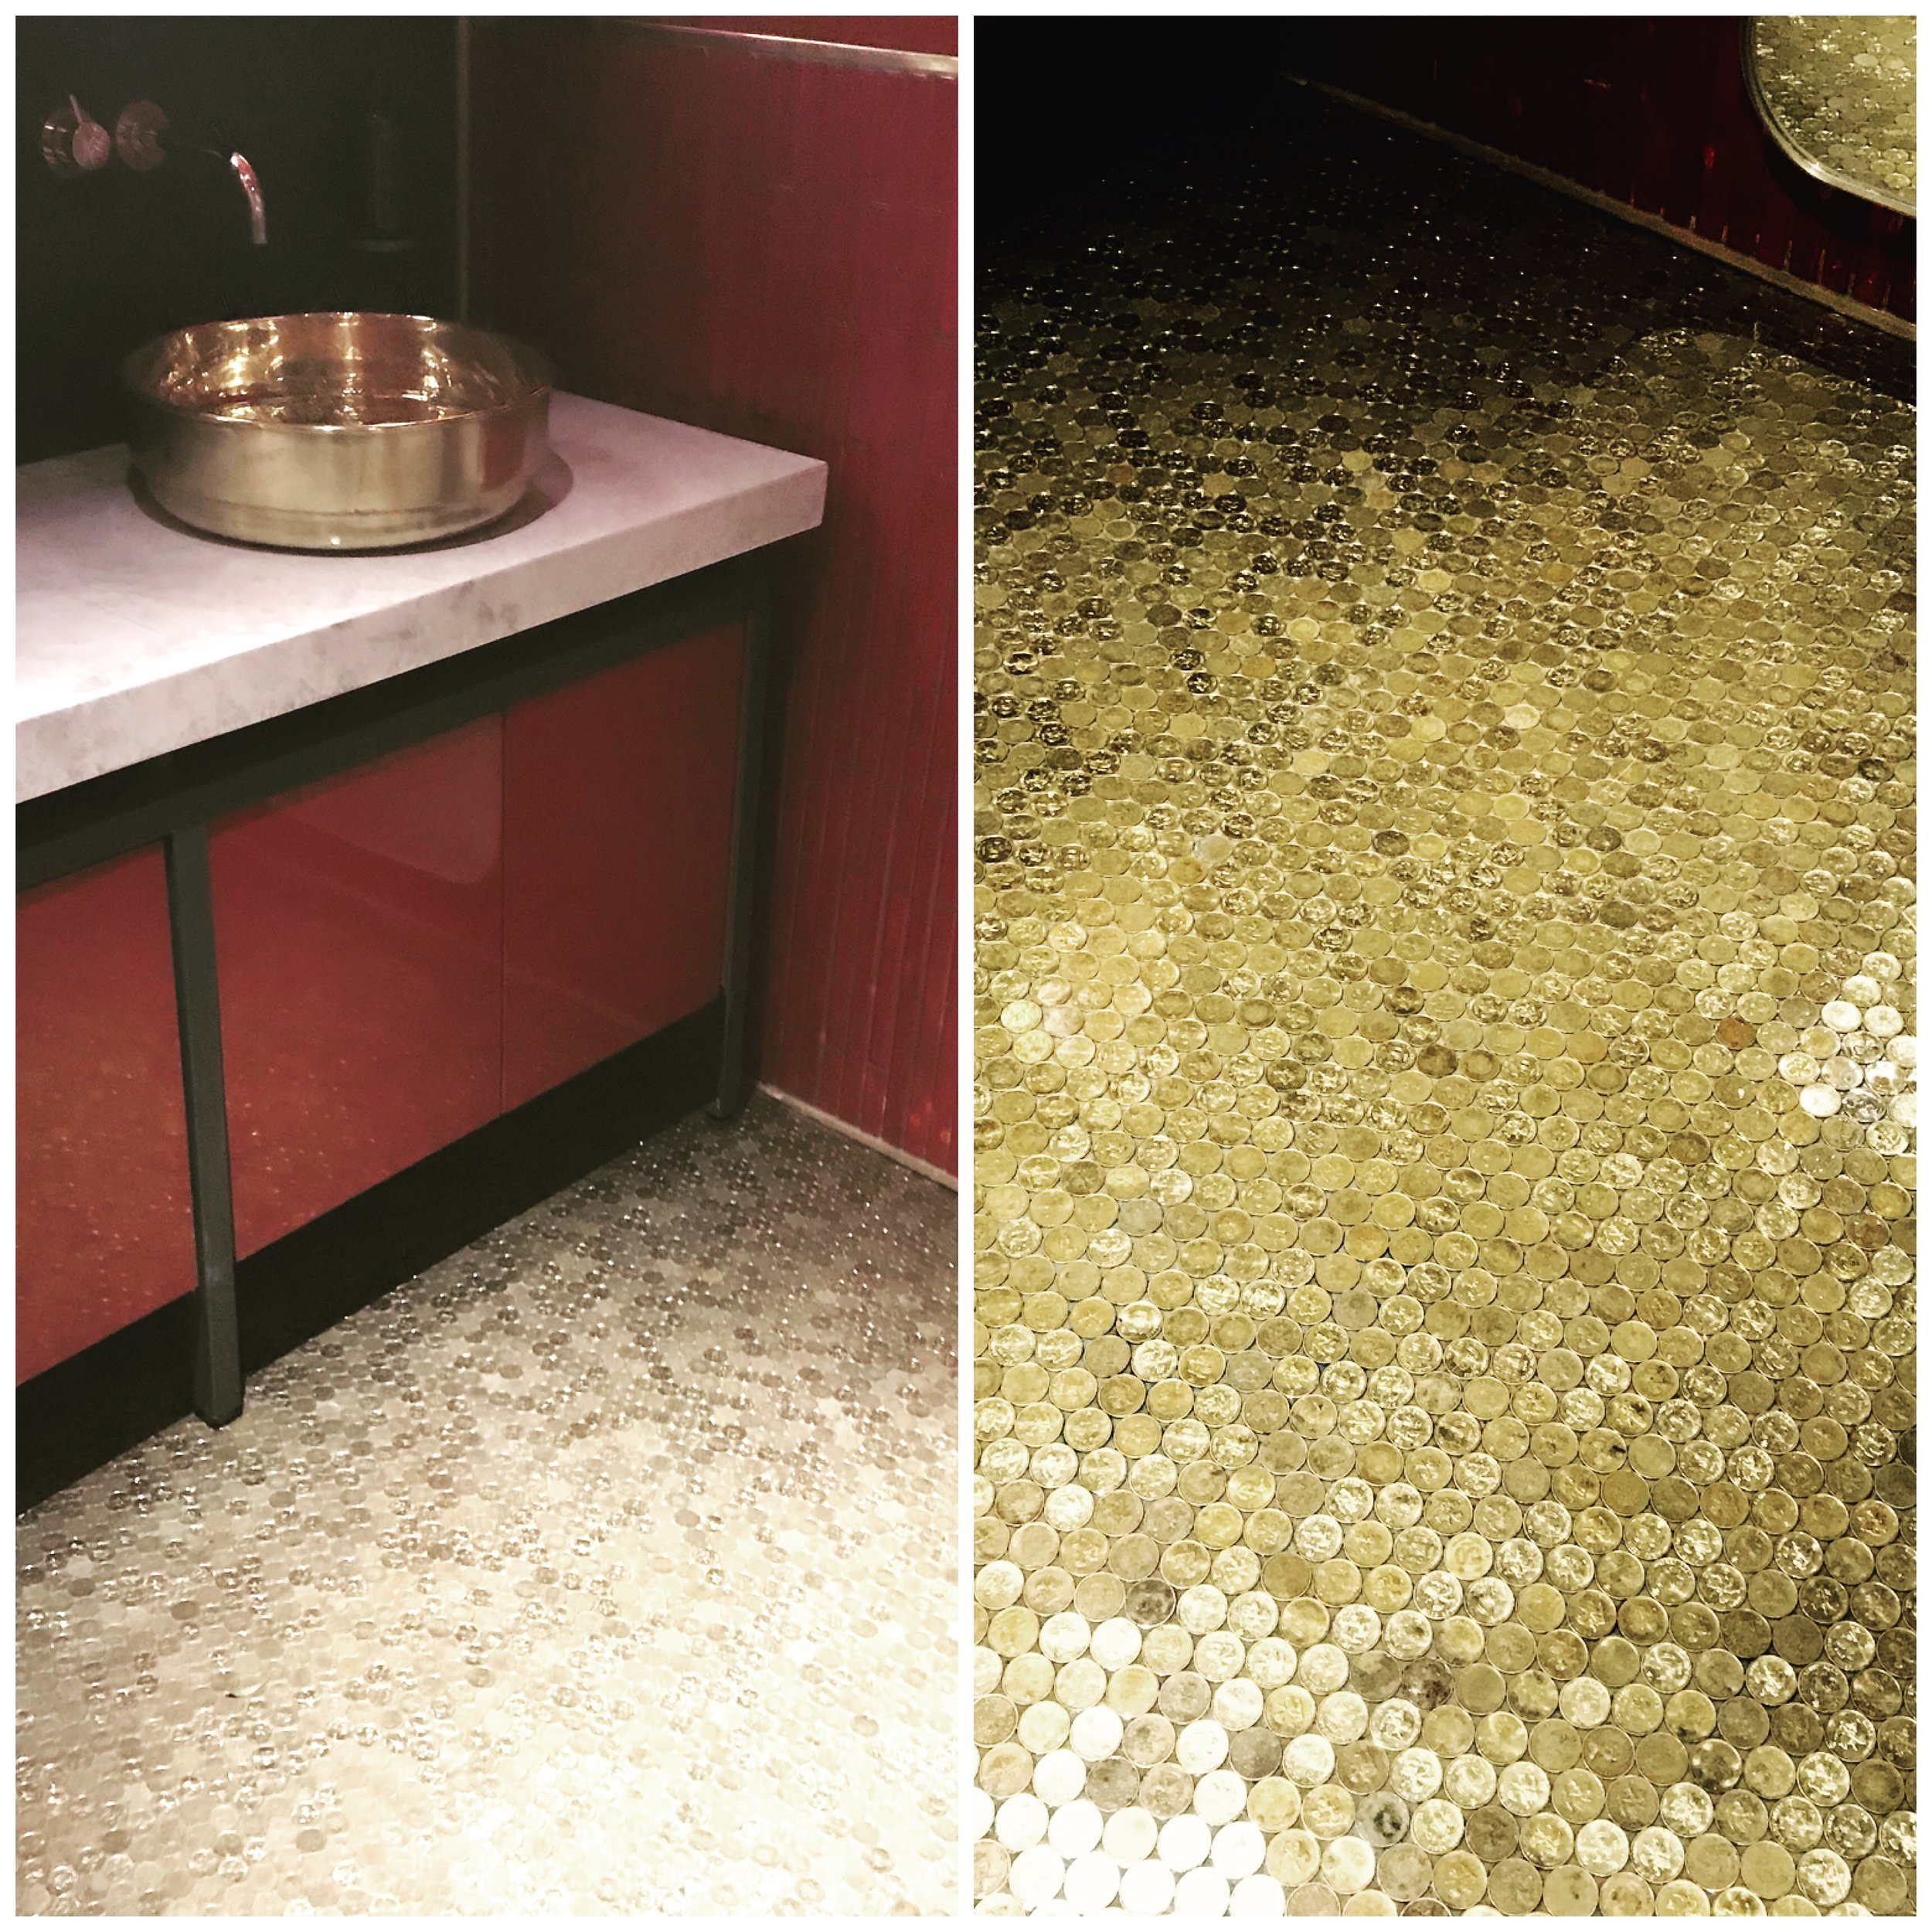 27500 coins cover this floor